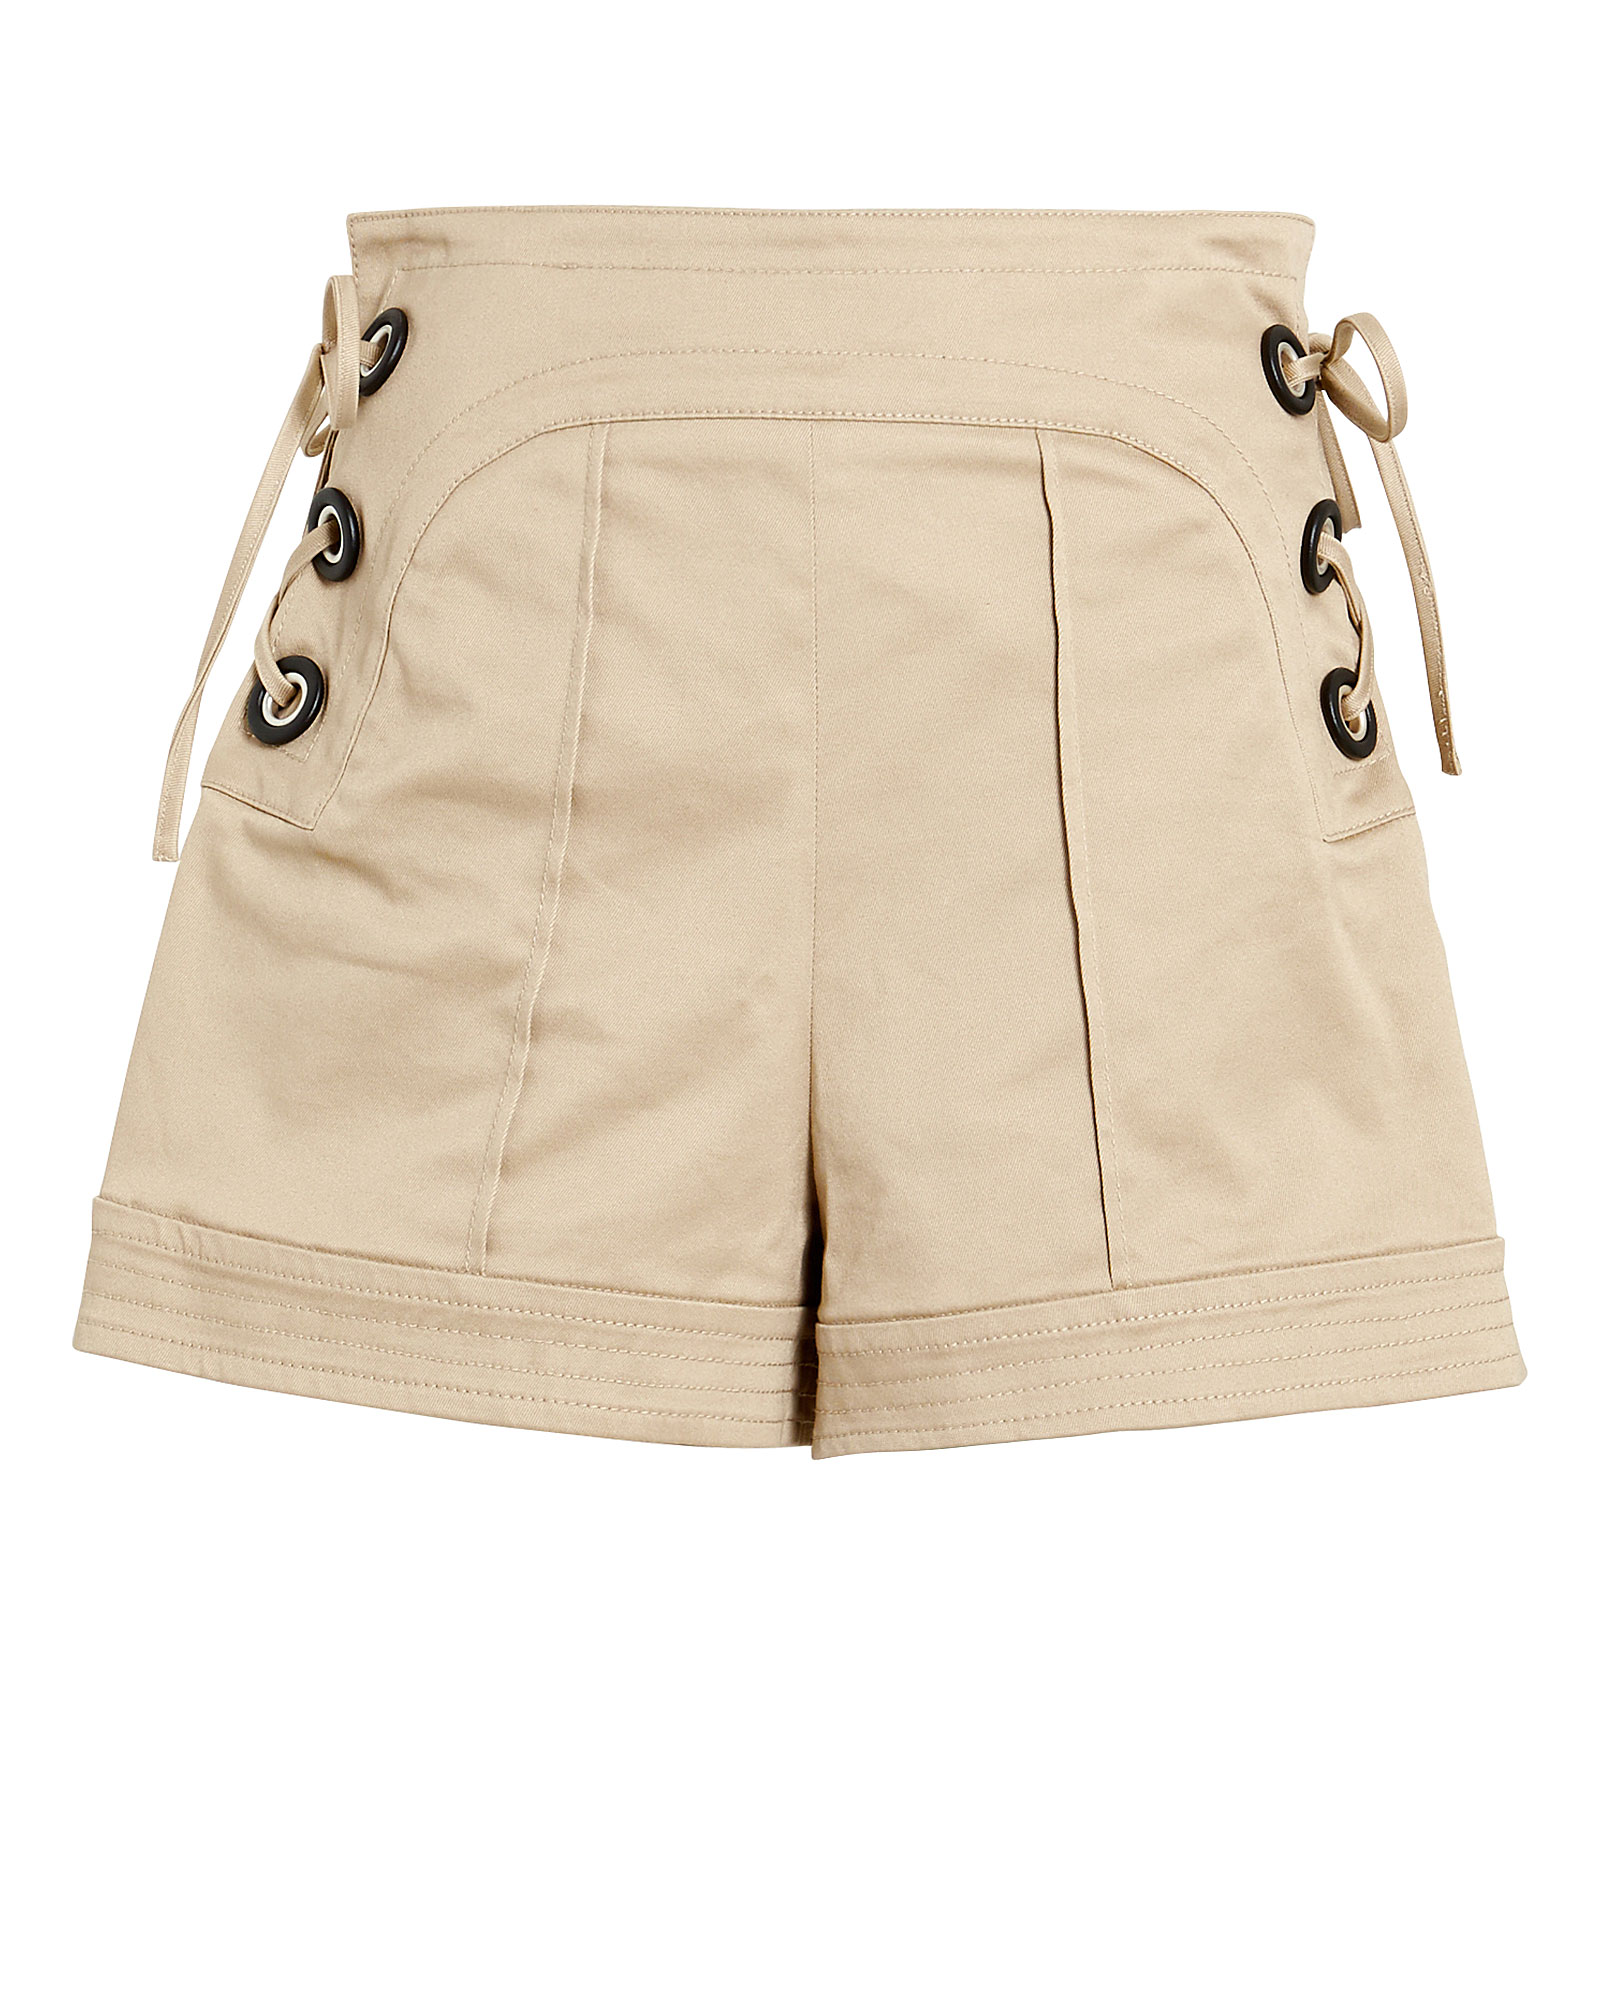 Alexis Shorts ALEXIS WINNICK LACE-UP TWILL SHORTS